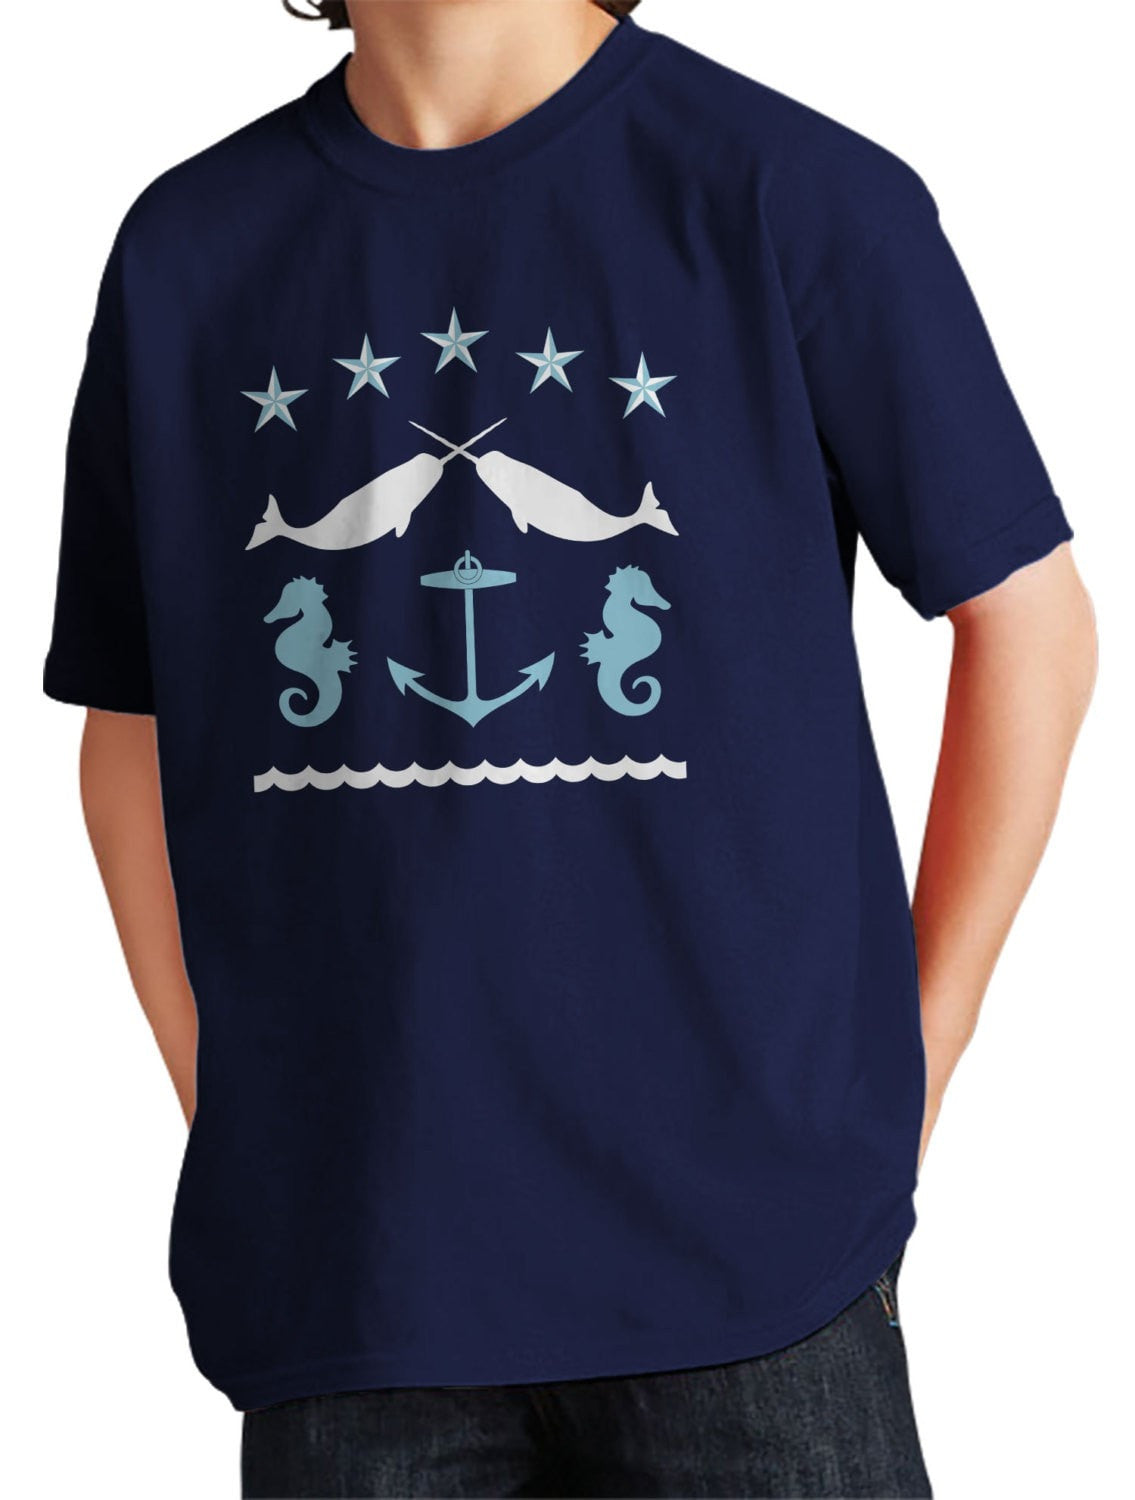 Girl's Narwahl T-Shirt - Unisex Fit Nautical Folk